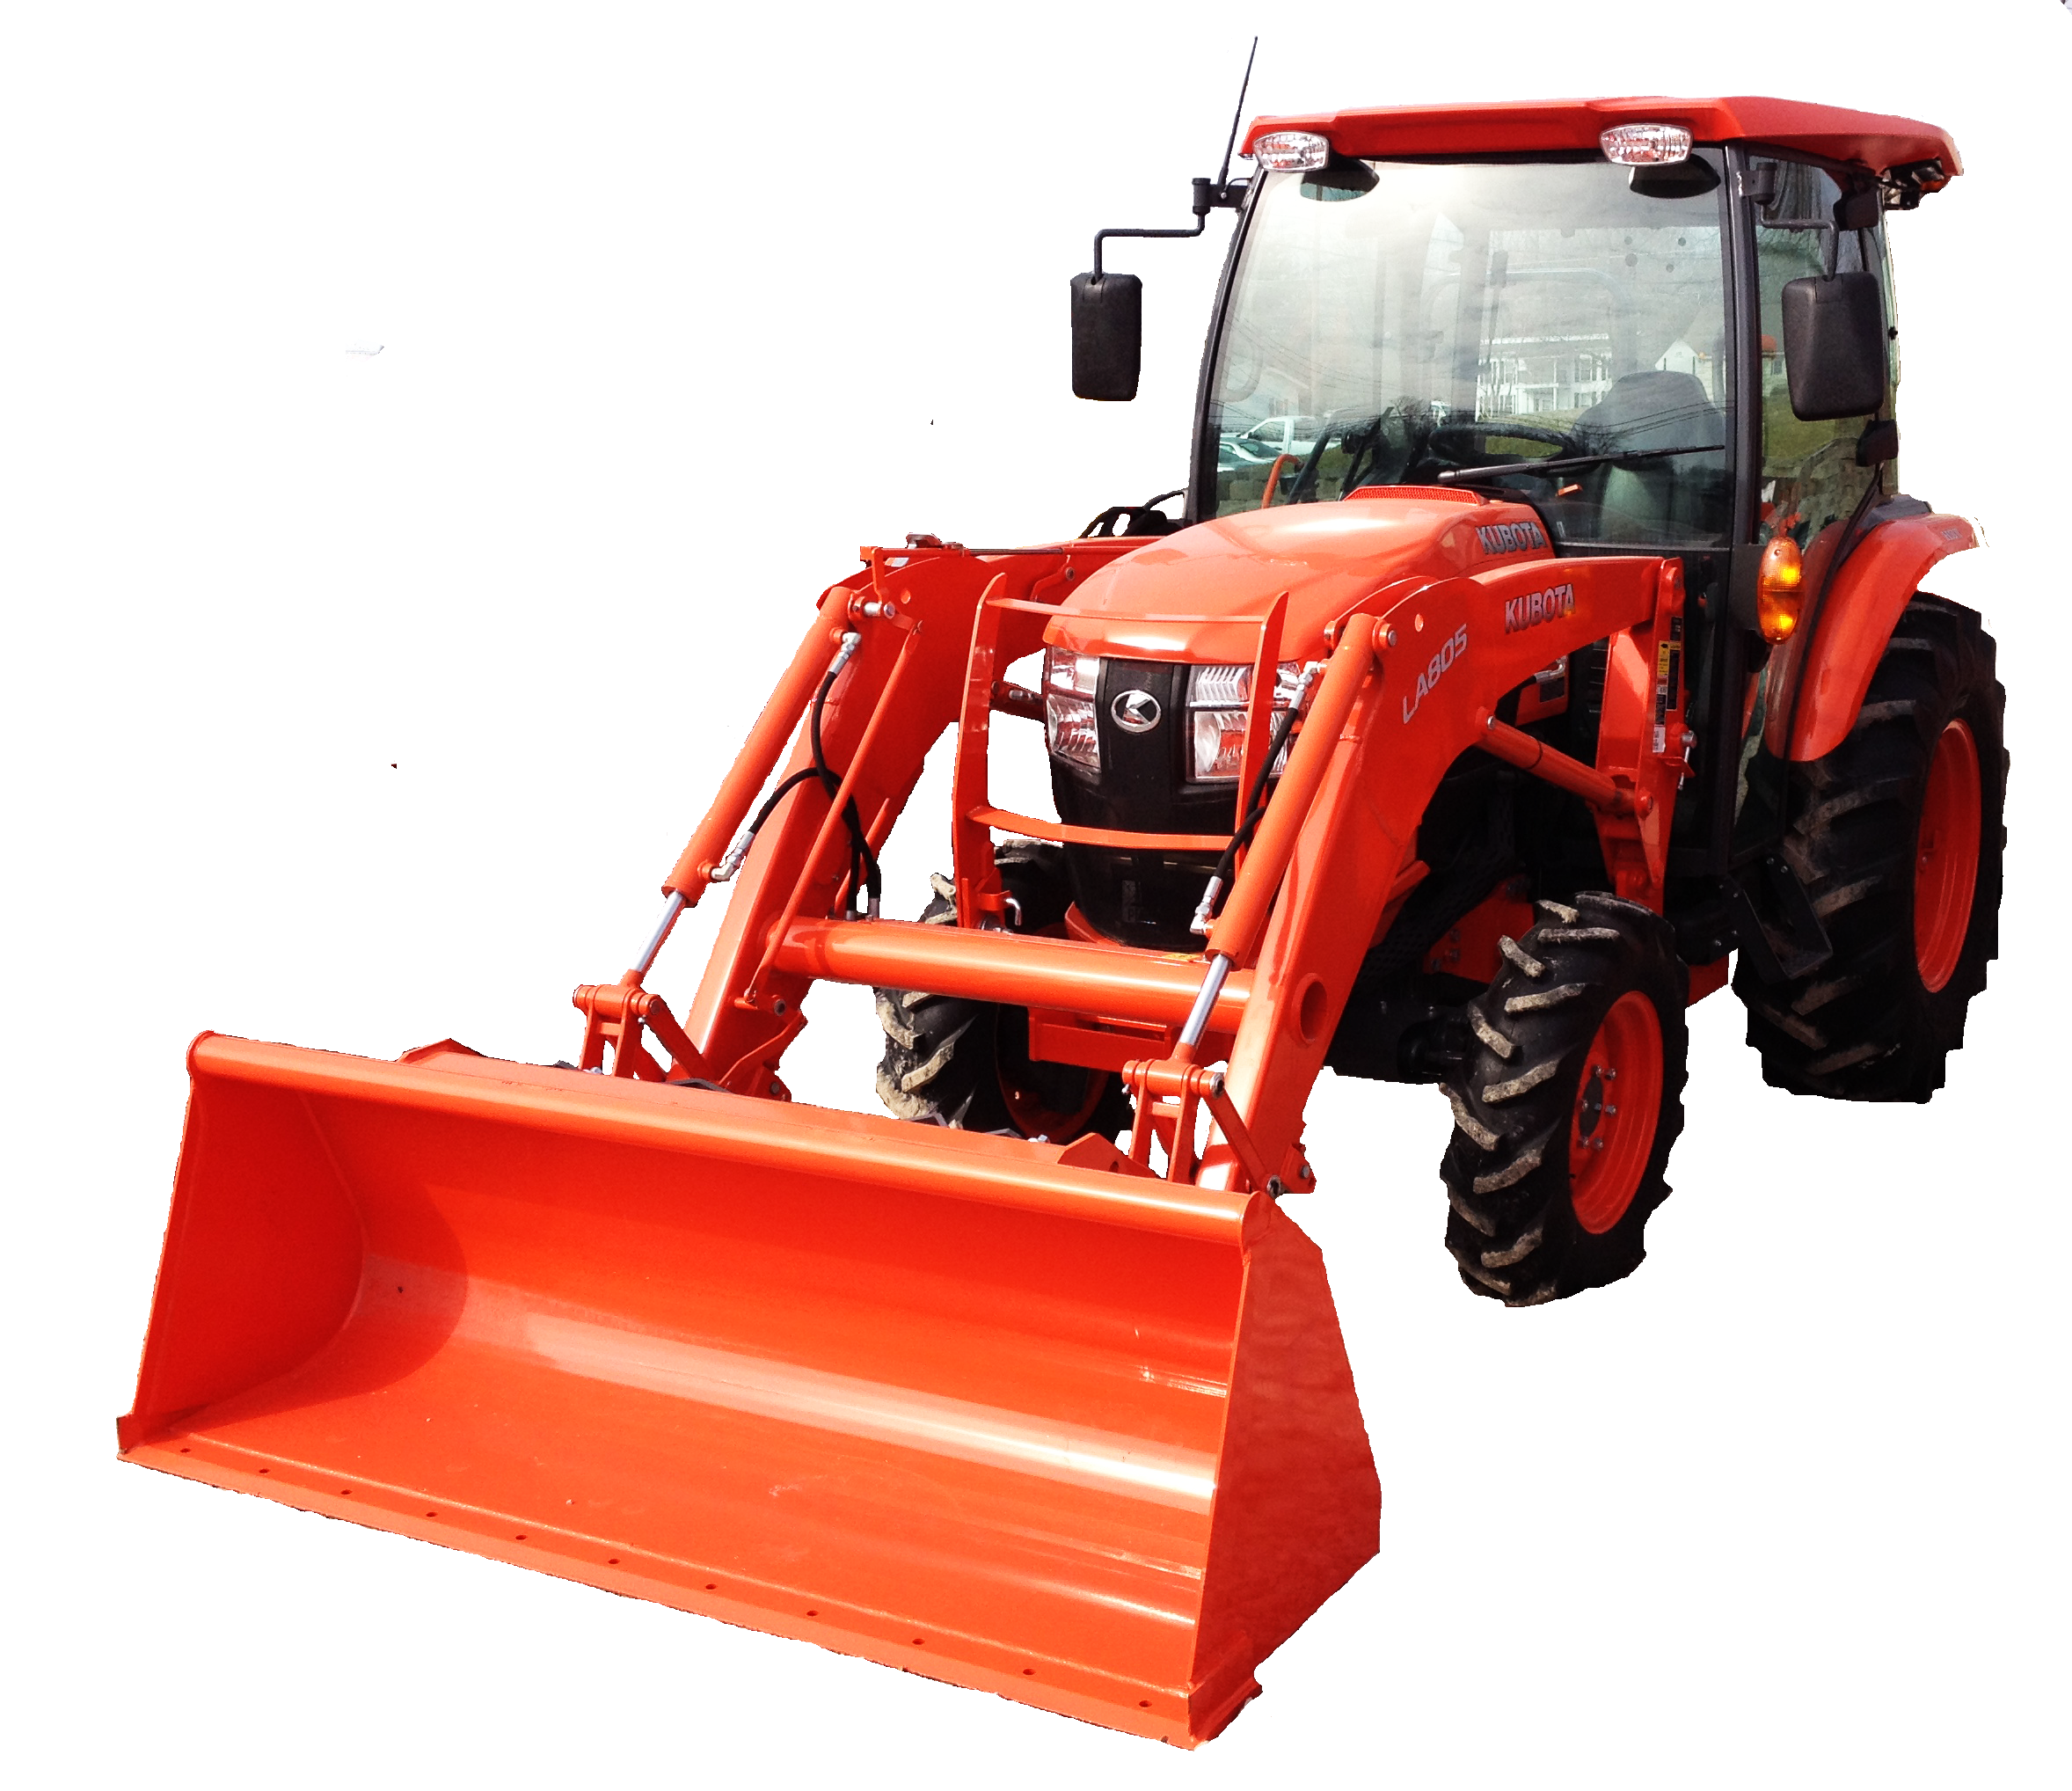 Ain't Life Grand: The Difference between the Kubota Standard